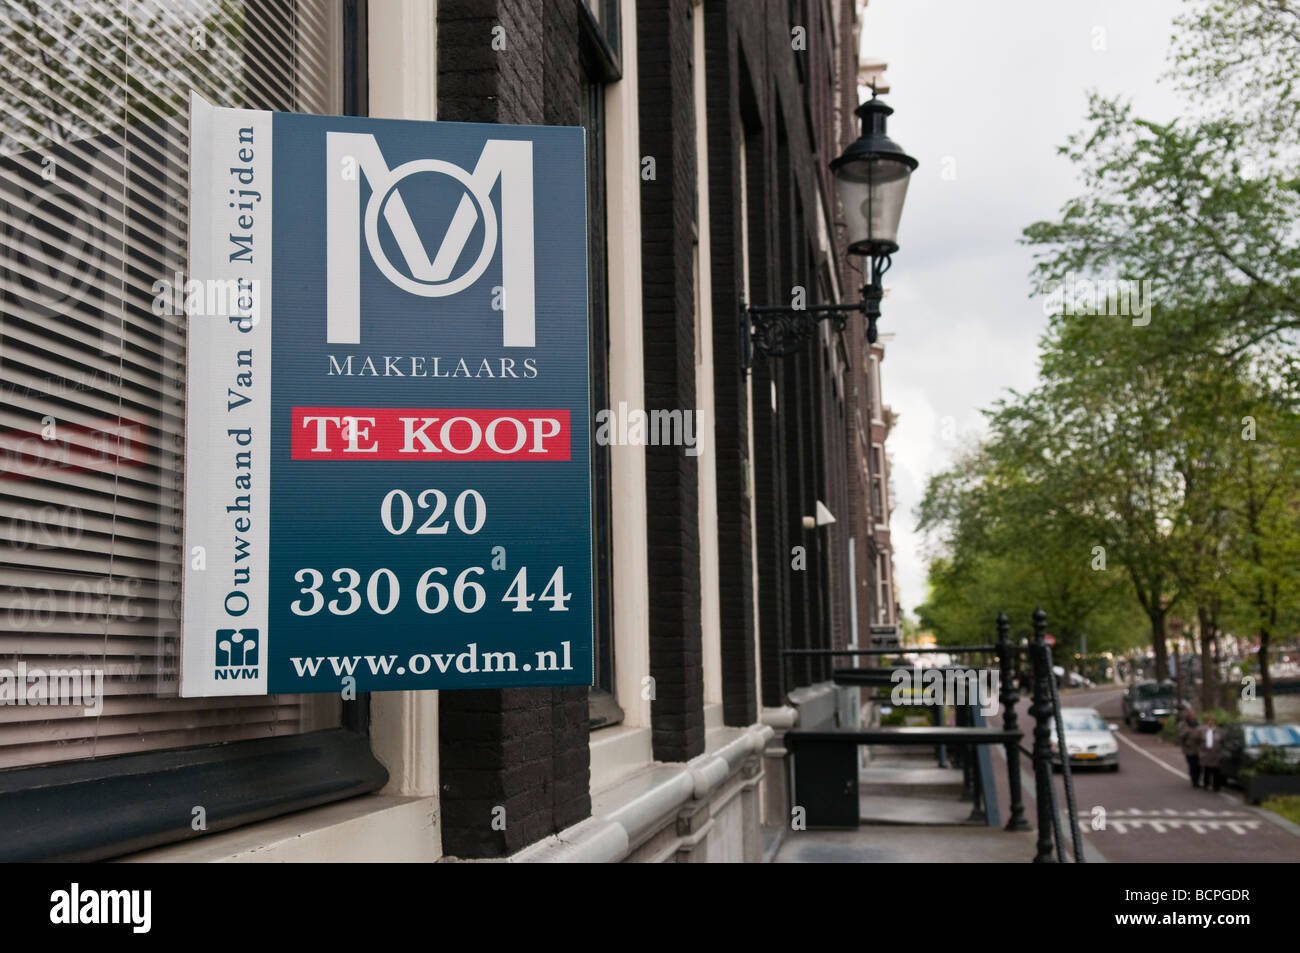 'Te Koop' (For Sale) estate agent sign on a house in an Amsterdam street. - Stock Image